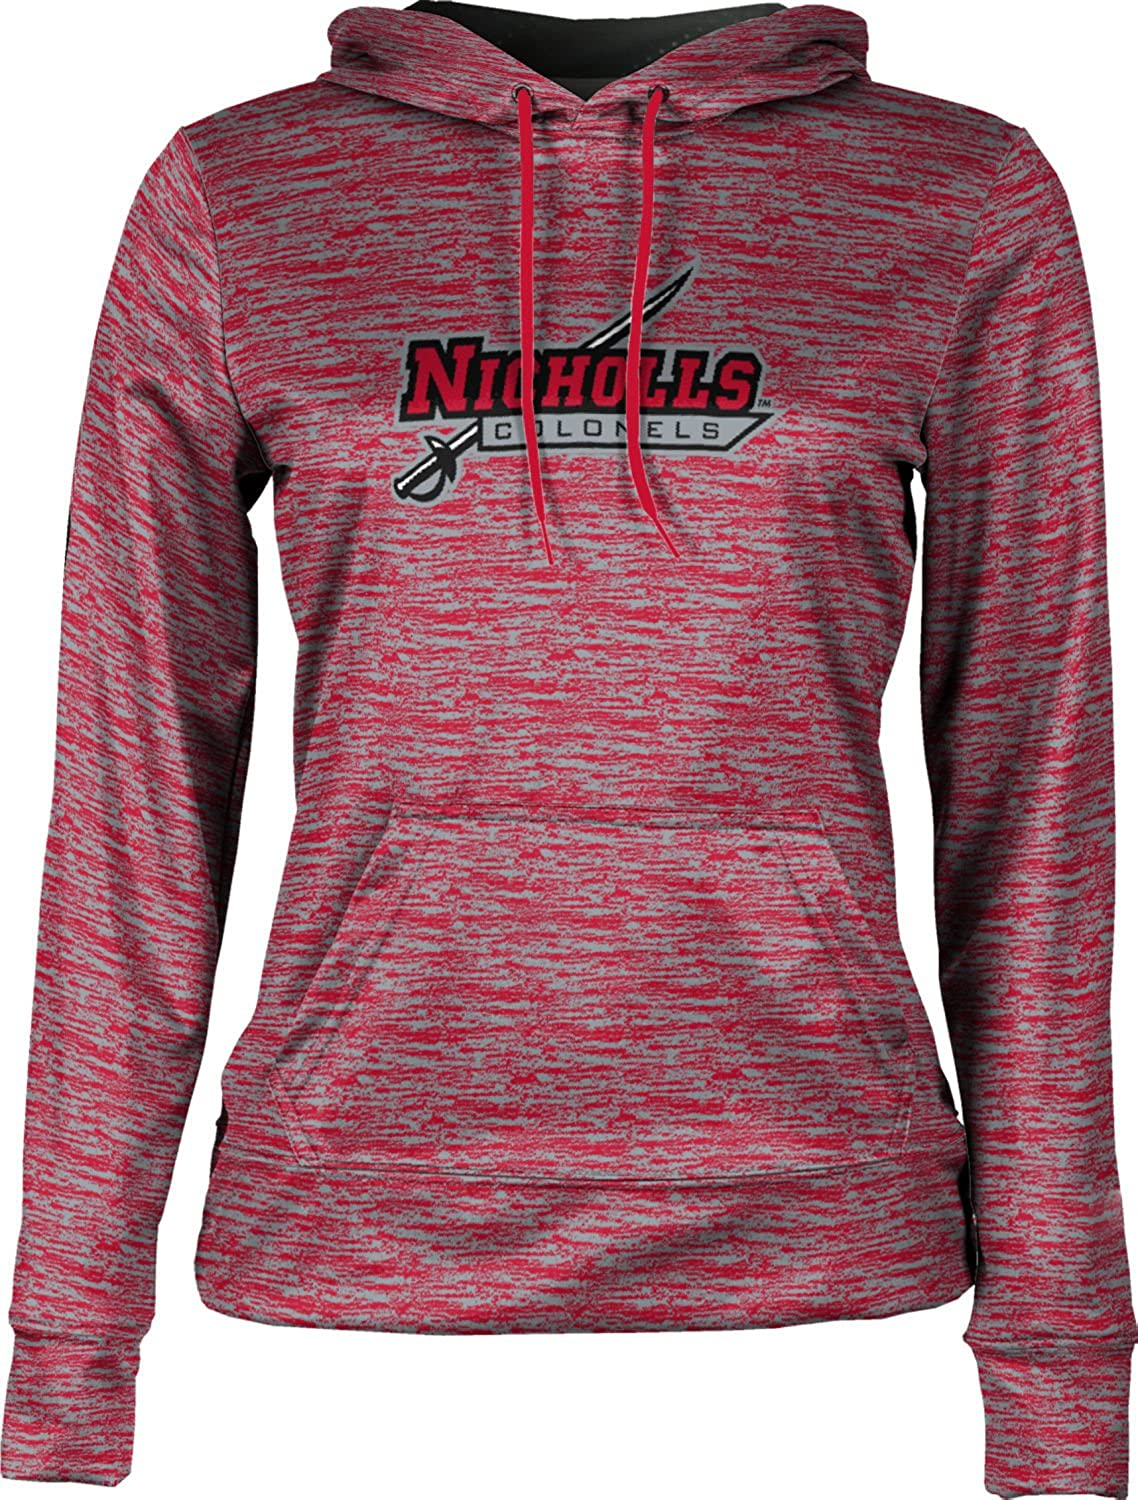 Brushed School Spirit Sweatshirt Nicholls State University Girls Pullover Hoodie